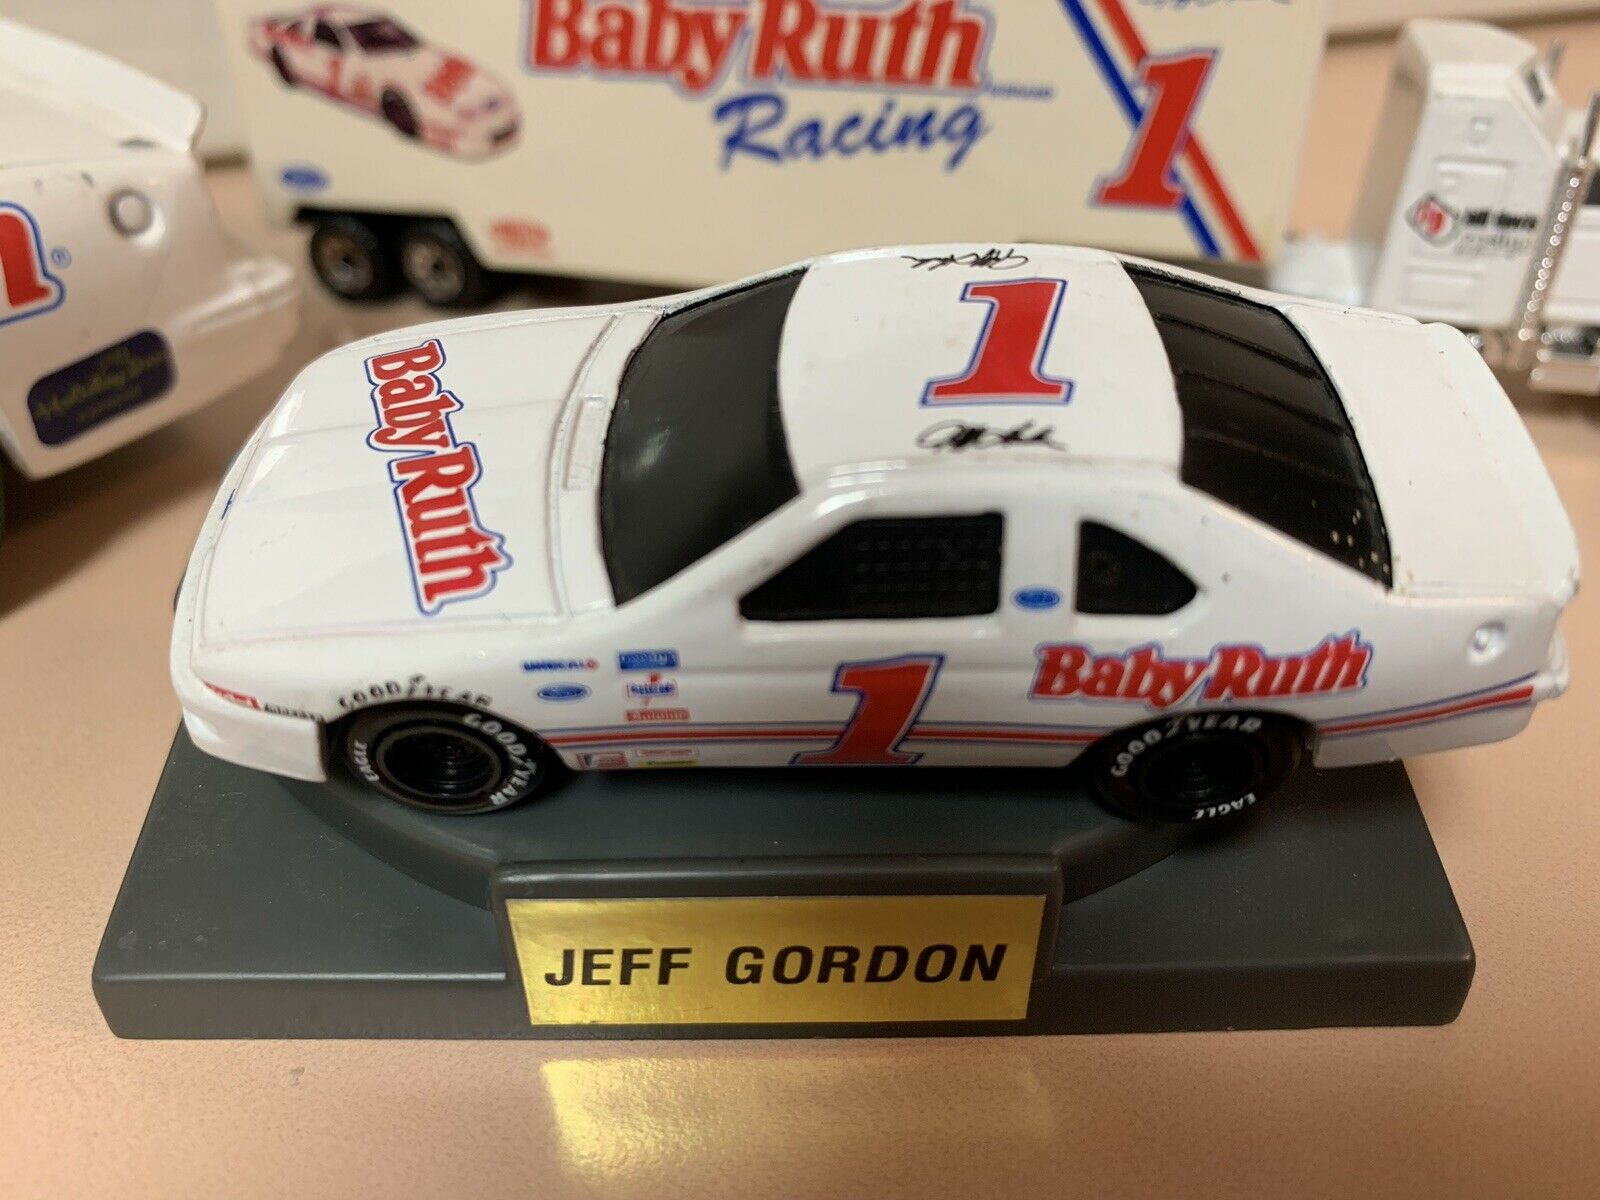 Nascar Young Jeff Gordon And Baby Ruth Racing !!!